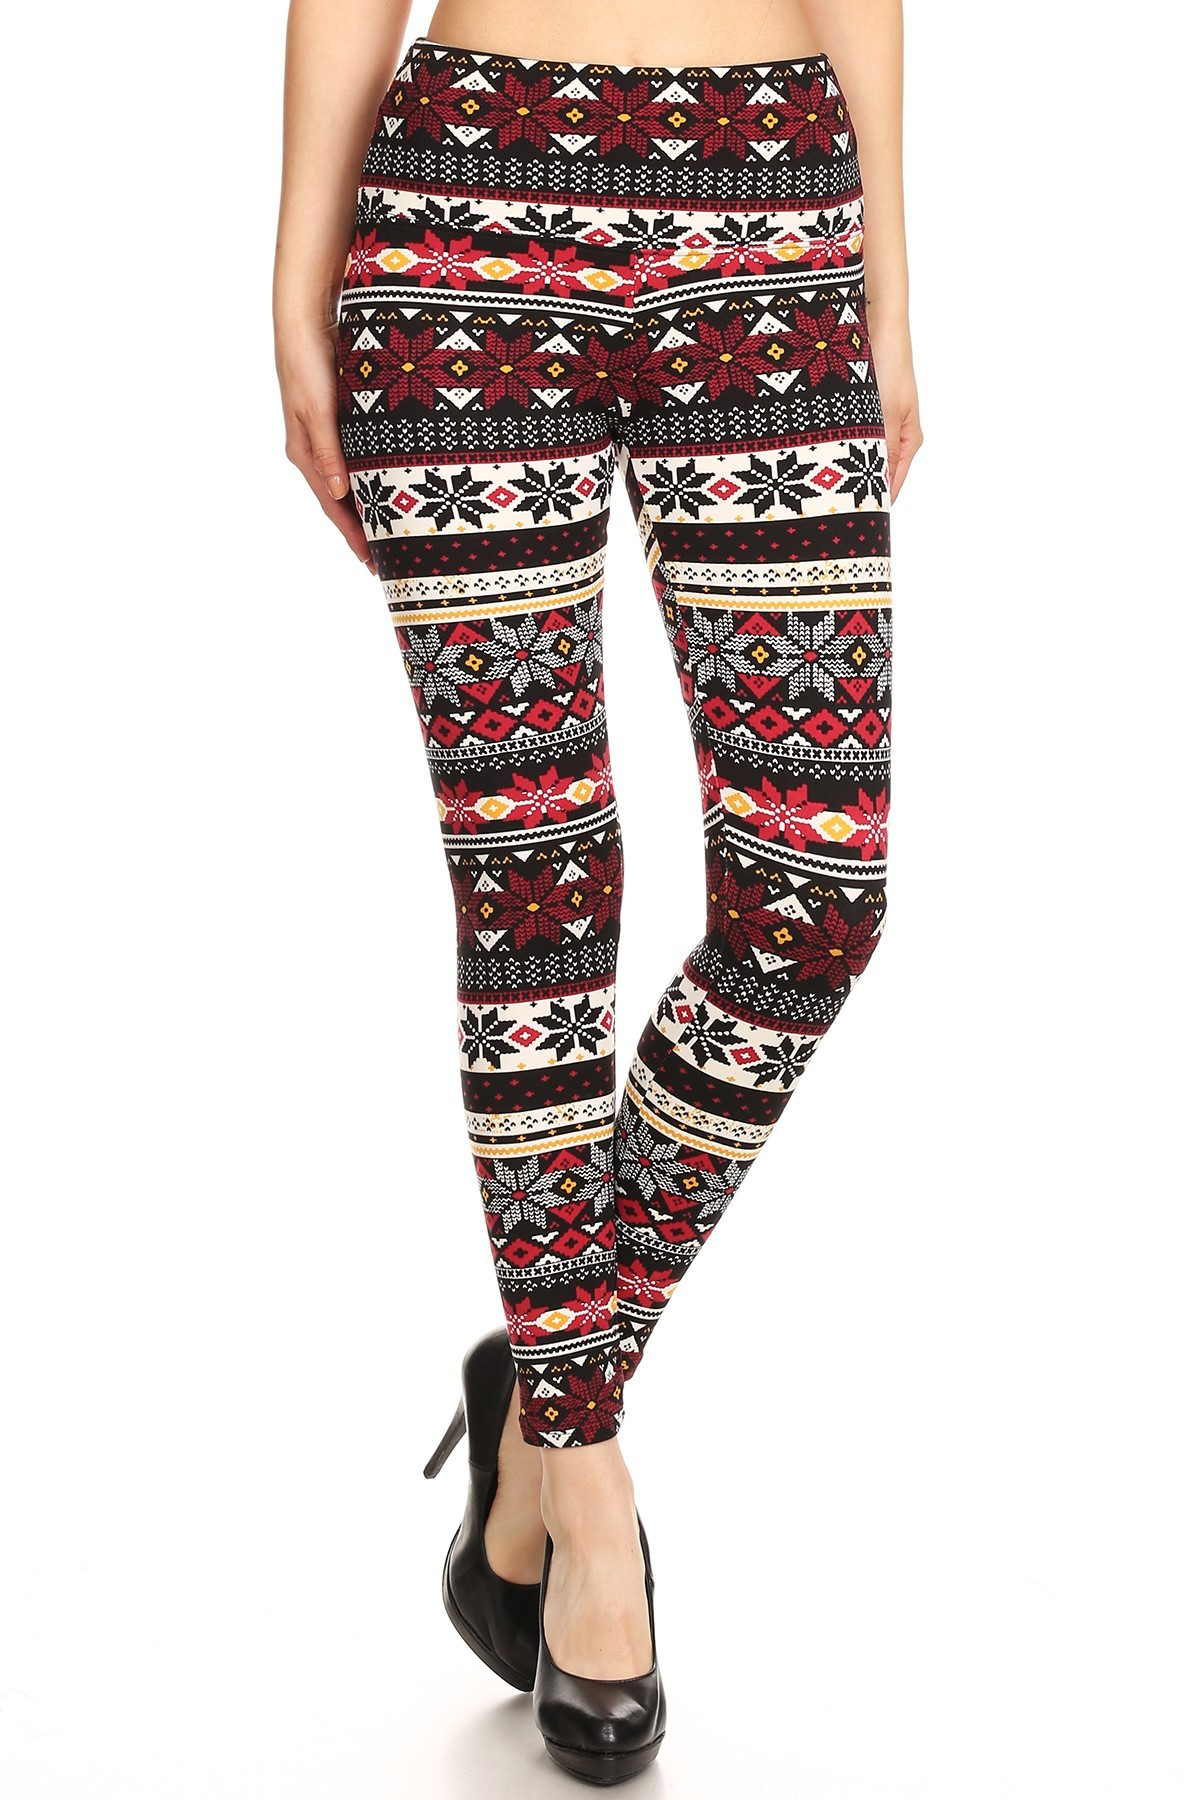 BLACK/WINE REINDEER PRINT HIGH WAIST FLEECE LINED ANKLE LEGGING #8L76-25